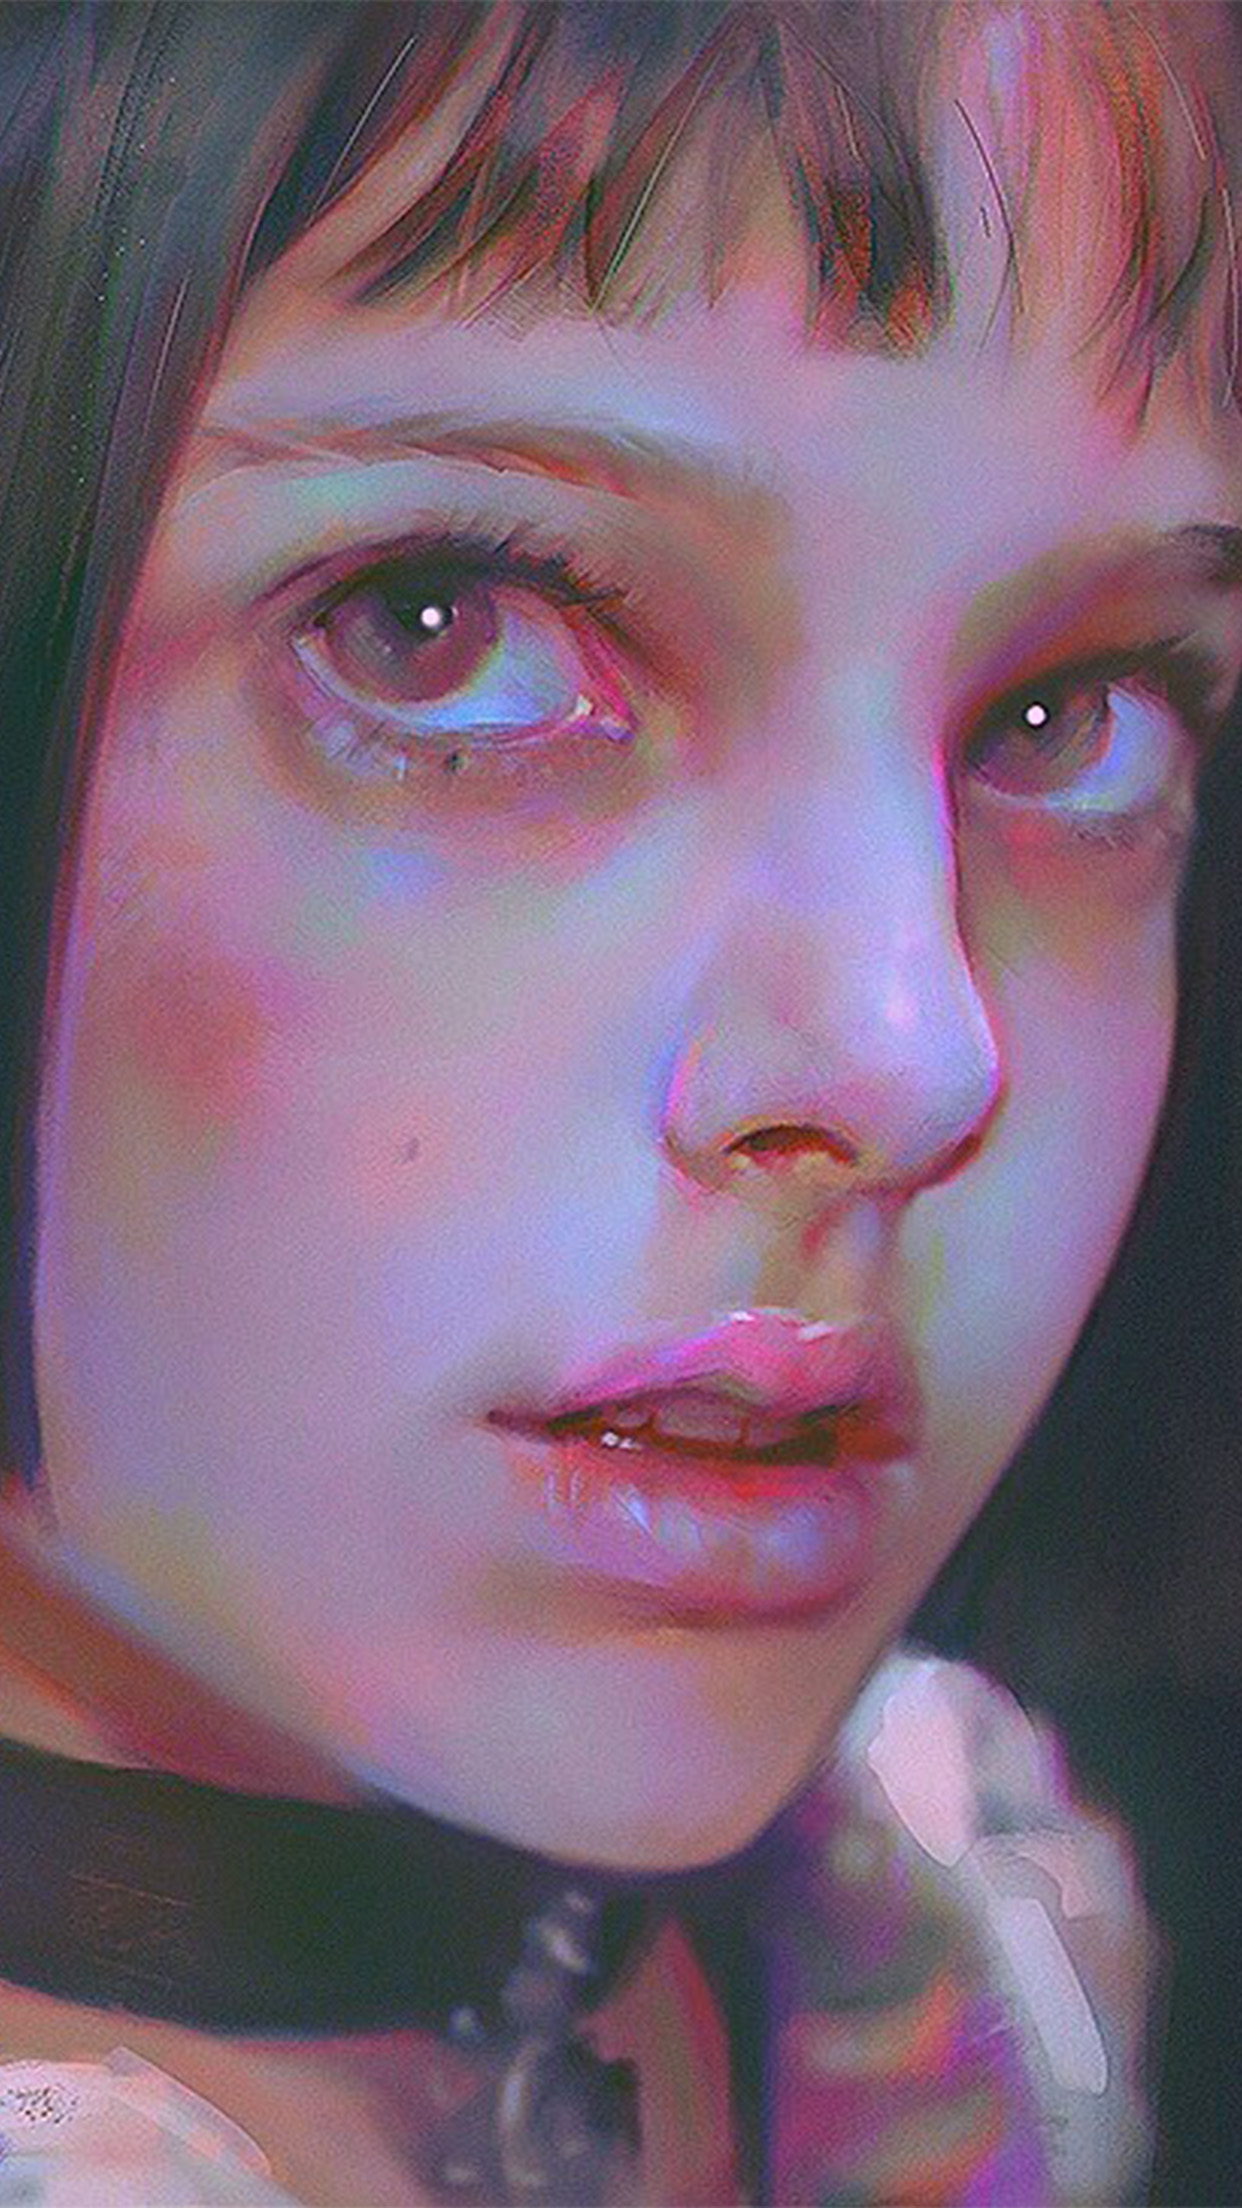 ax50-matilda-leon-paint-illustration-art-yanjun-cheng ...